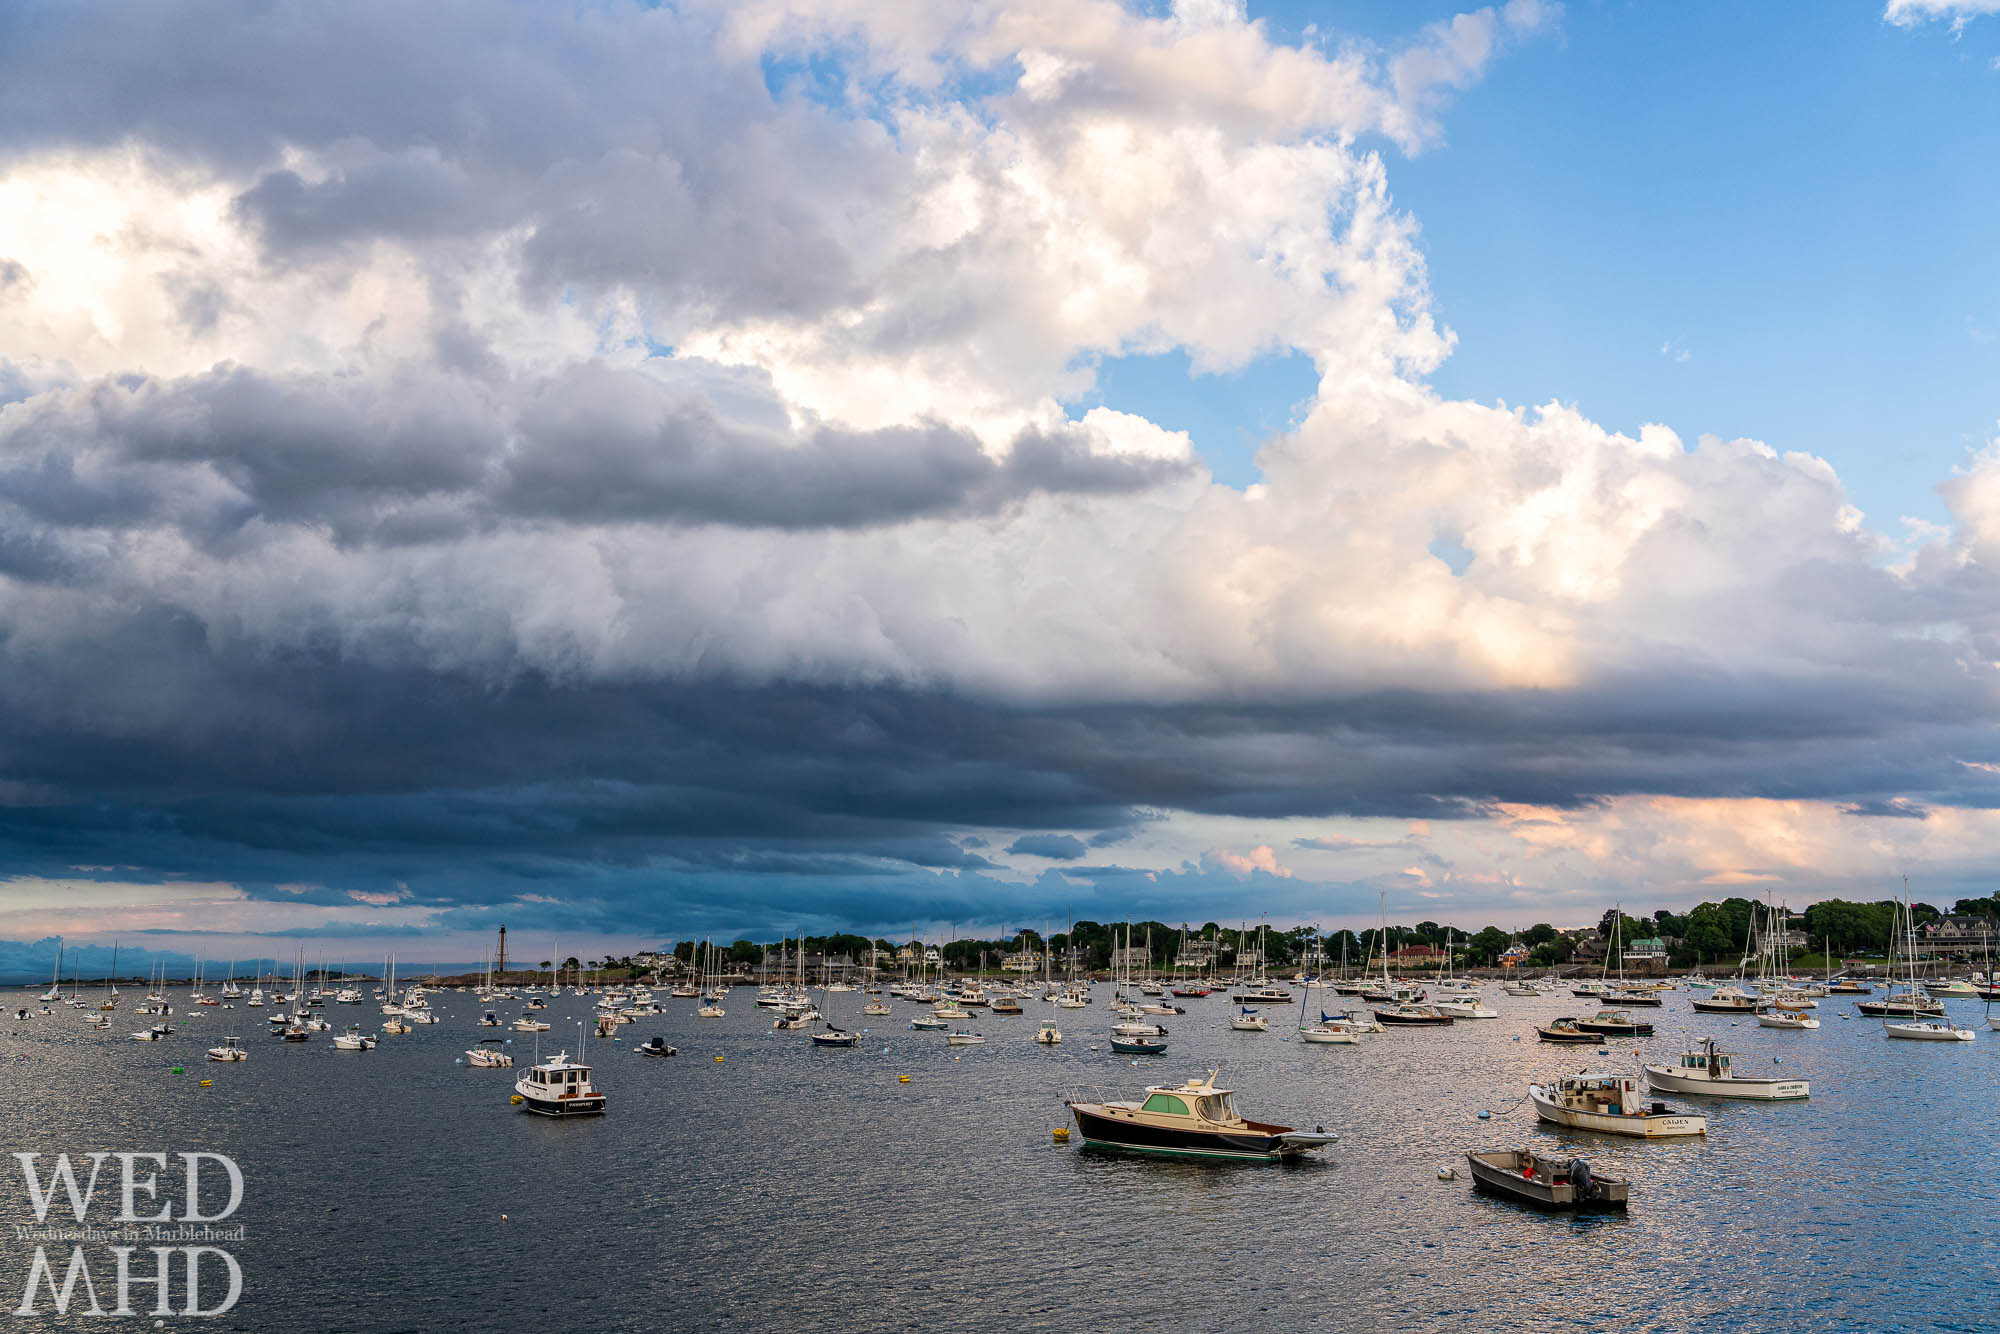 Storm clouds gather with boats in their moorings pointing toward the interesting sky as the show is about to begin